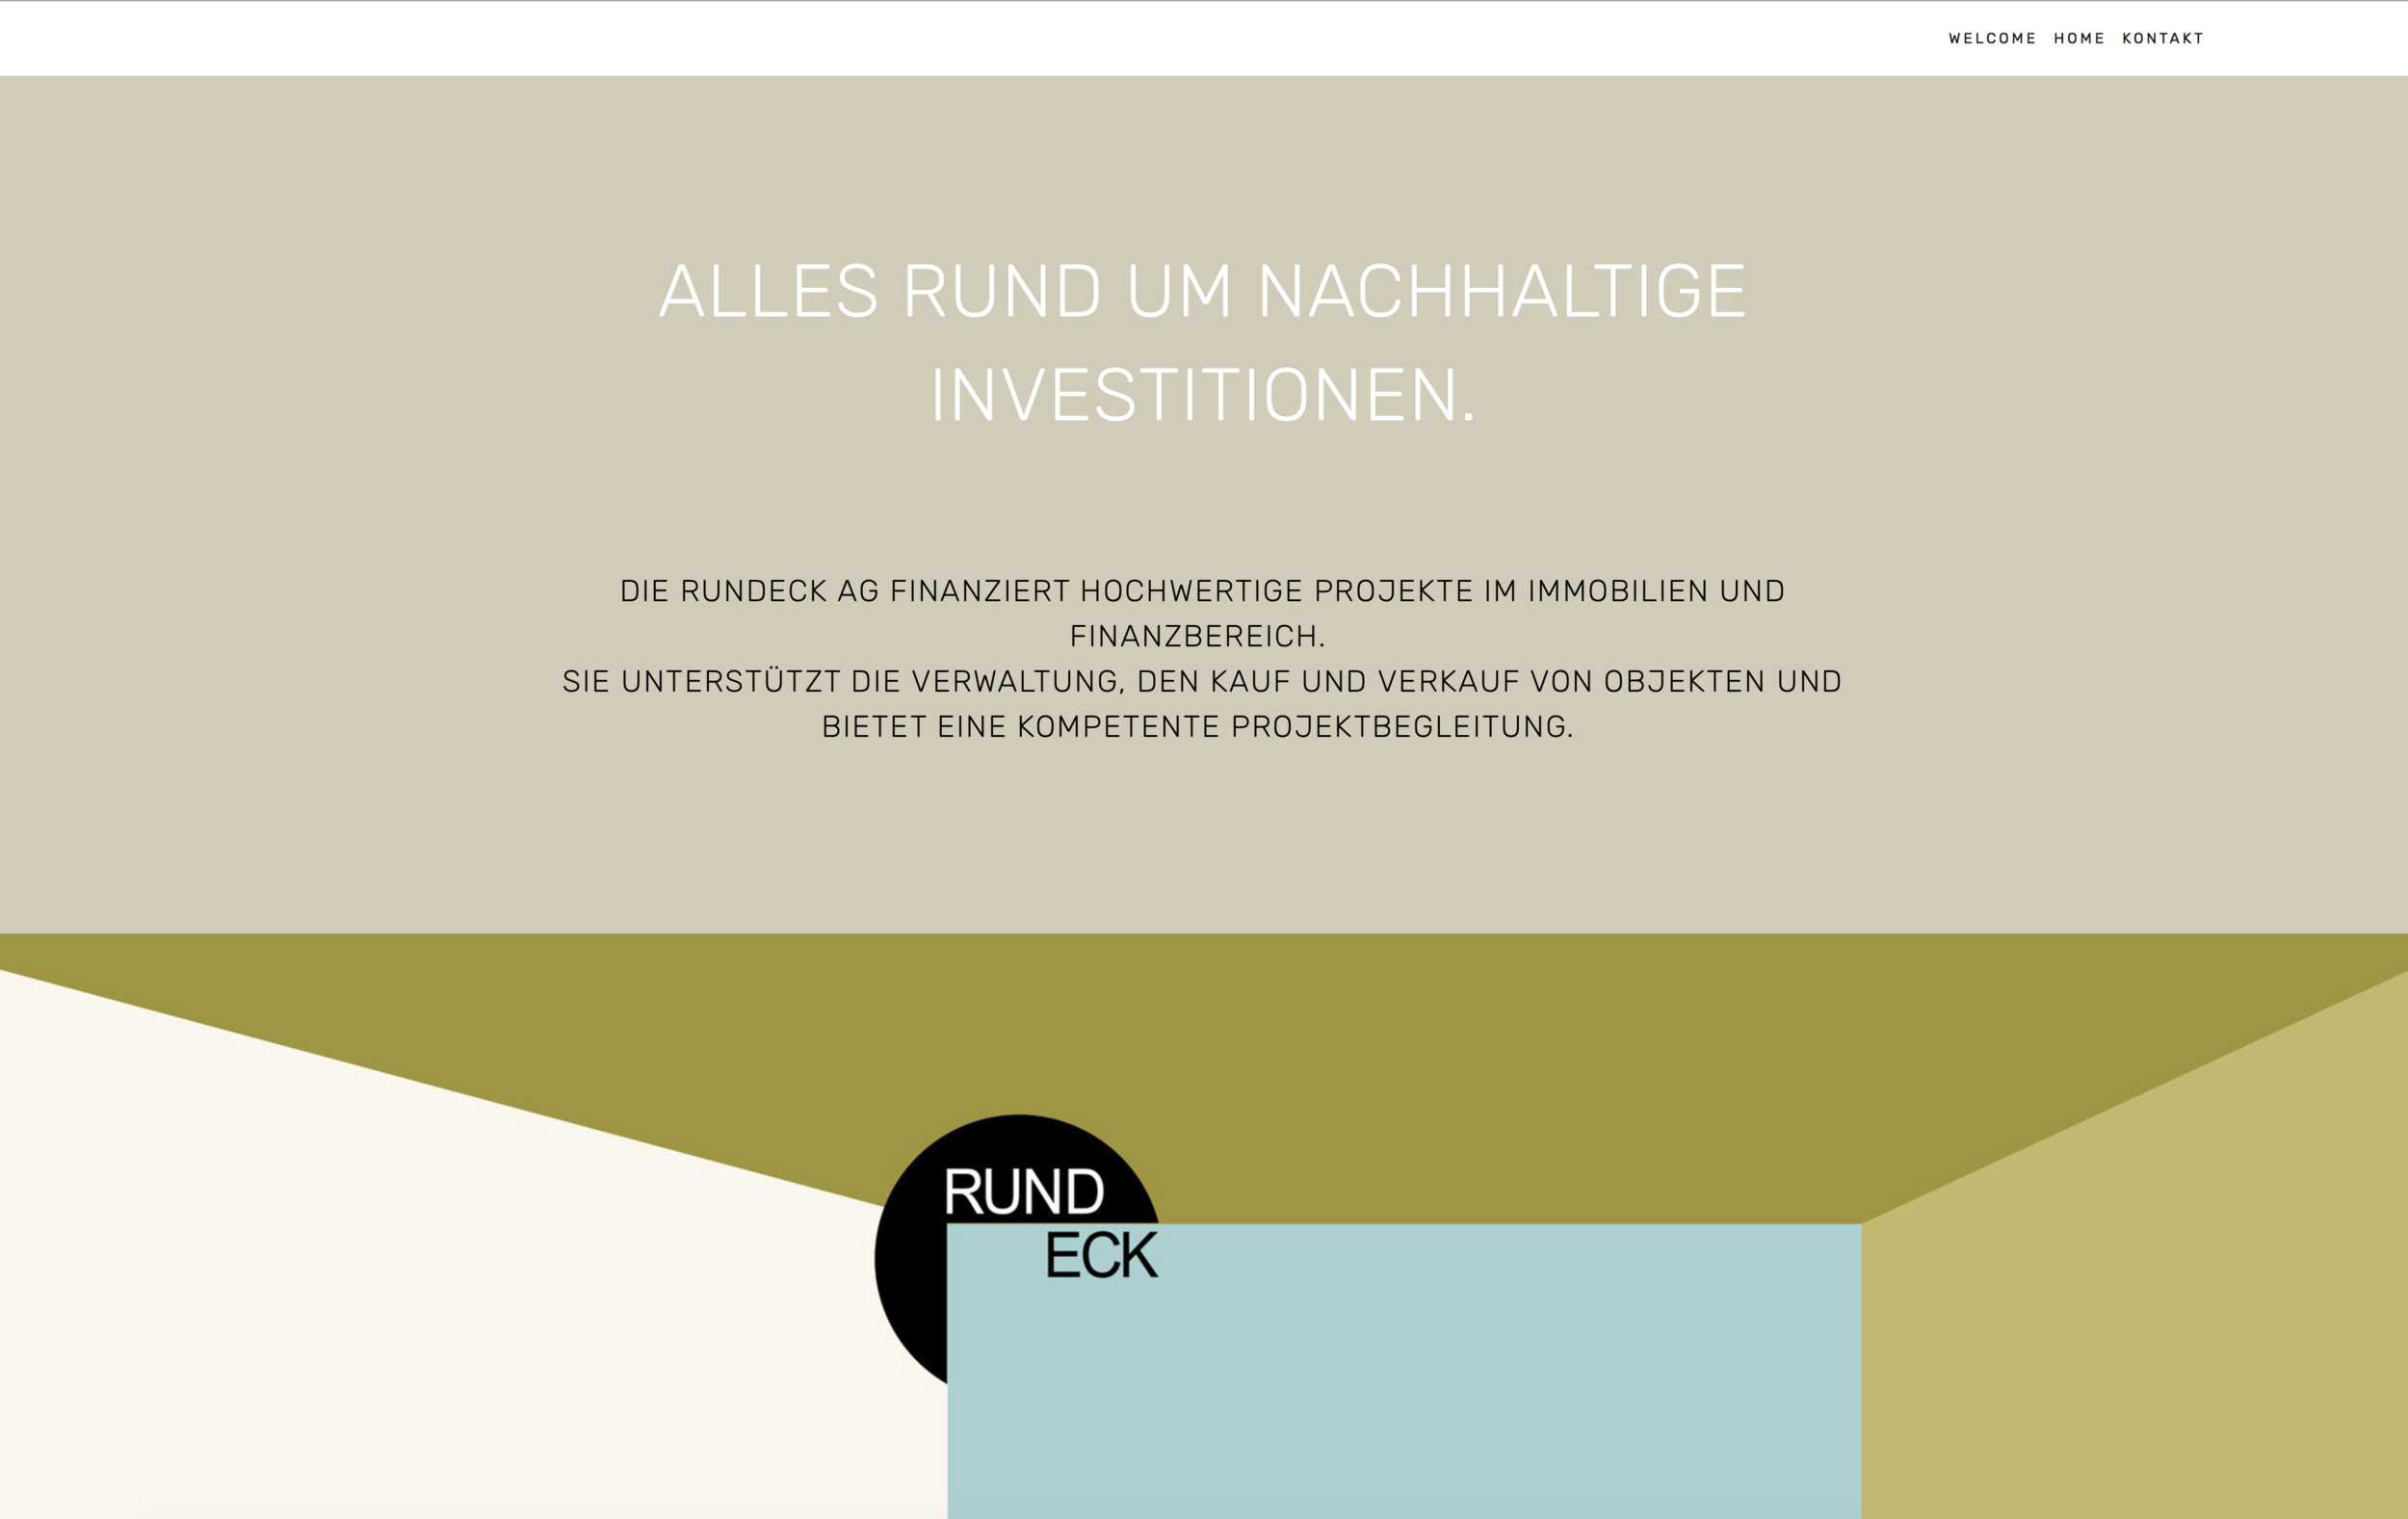 rundeck5.png